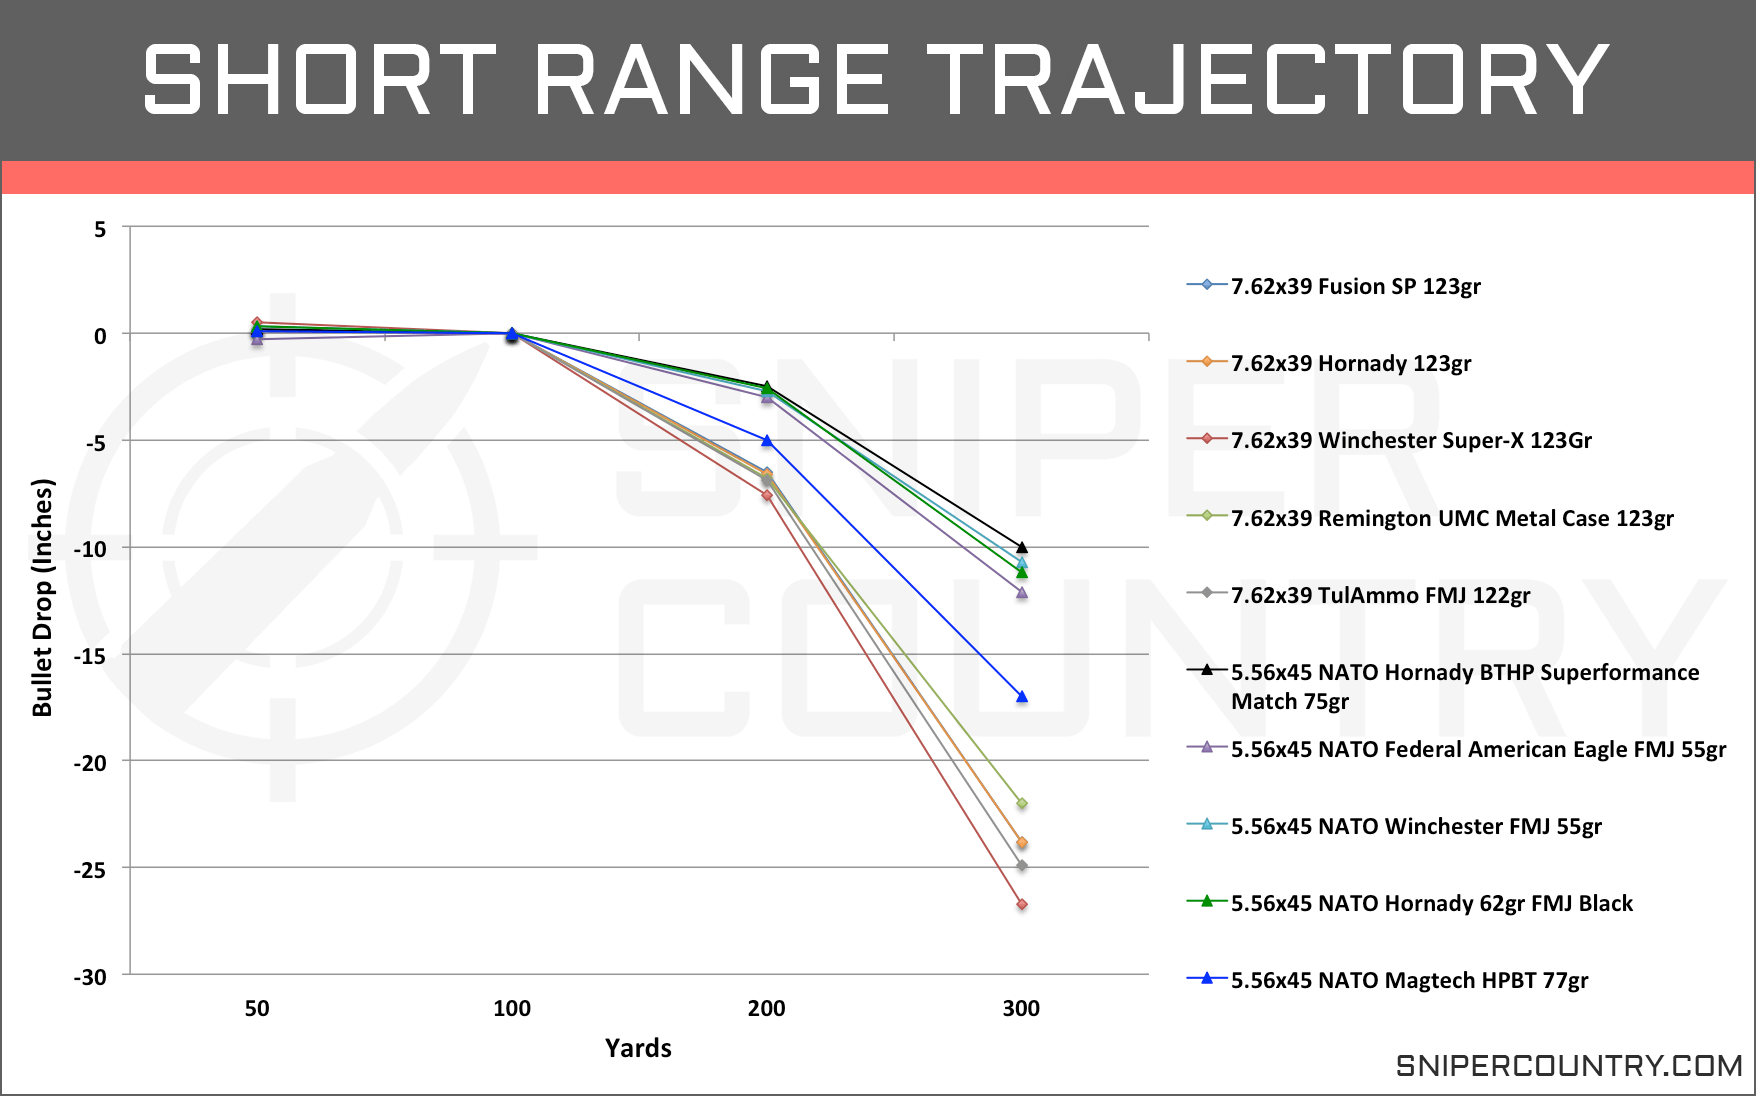 Short Range Trajectory 5.56×45 vs 7.62×39